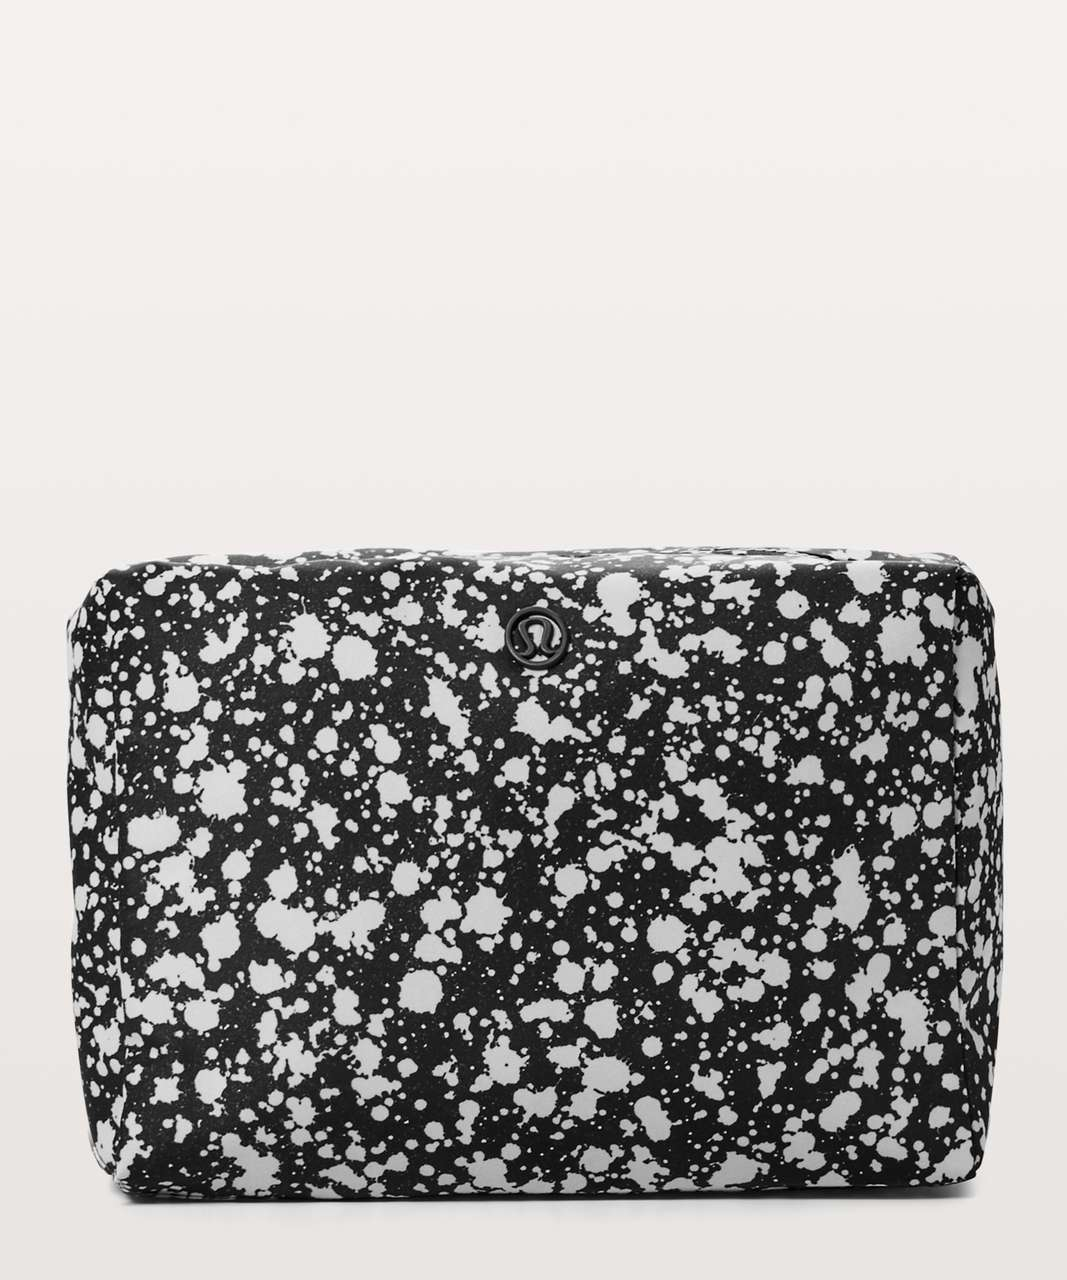 Lululemon All Your Small Things Pouch *4L - Bleached Starlight Black